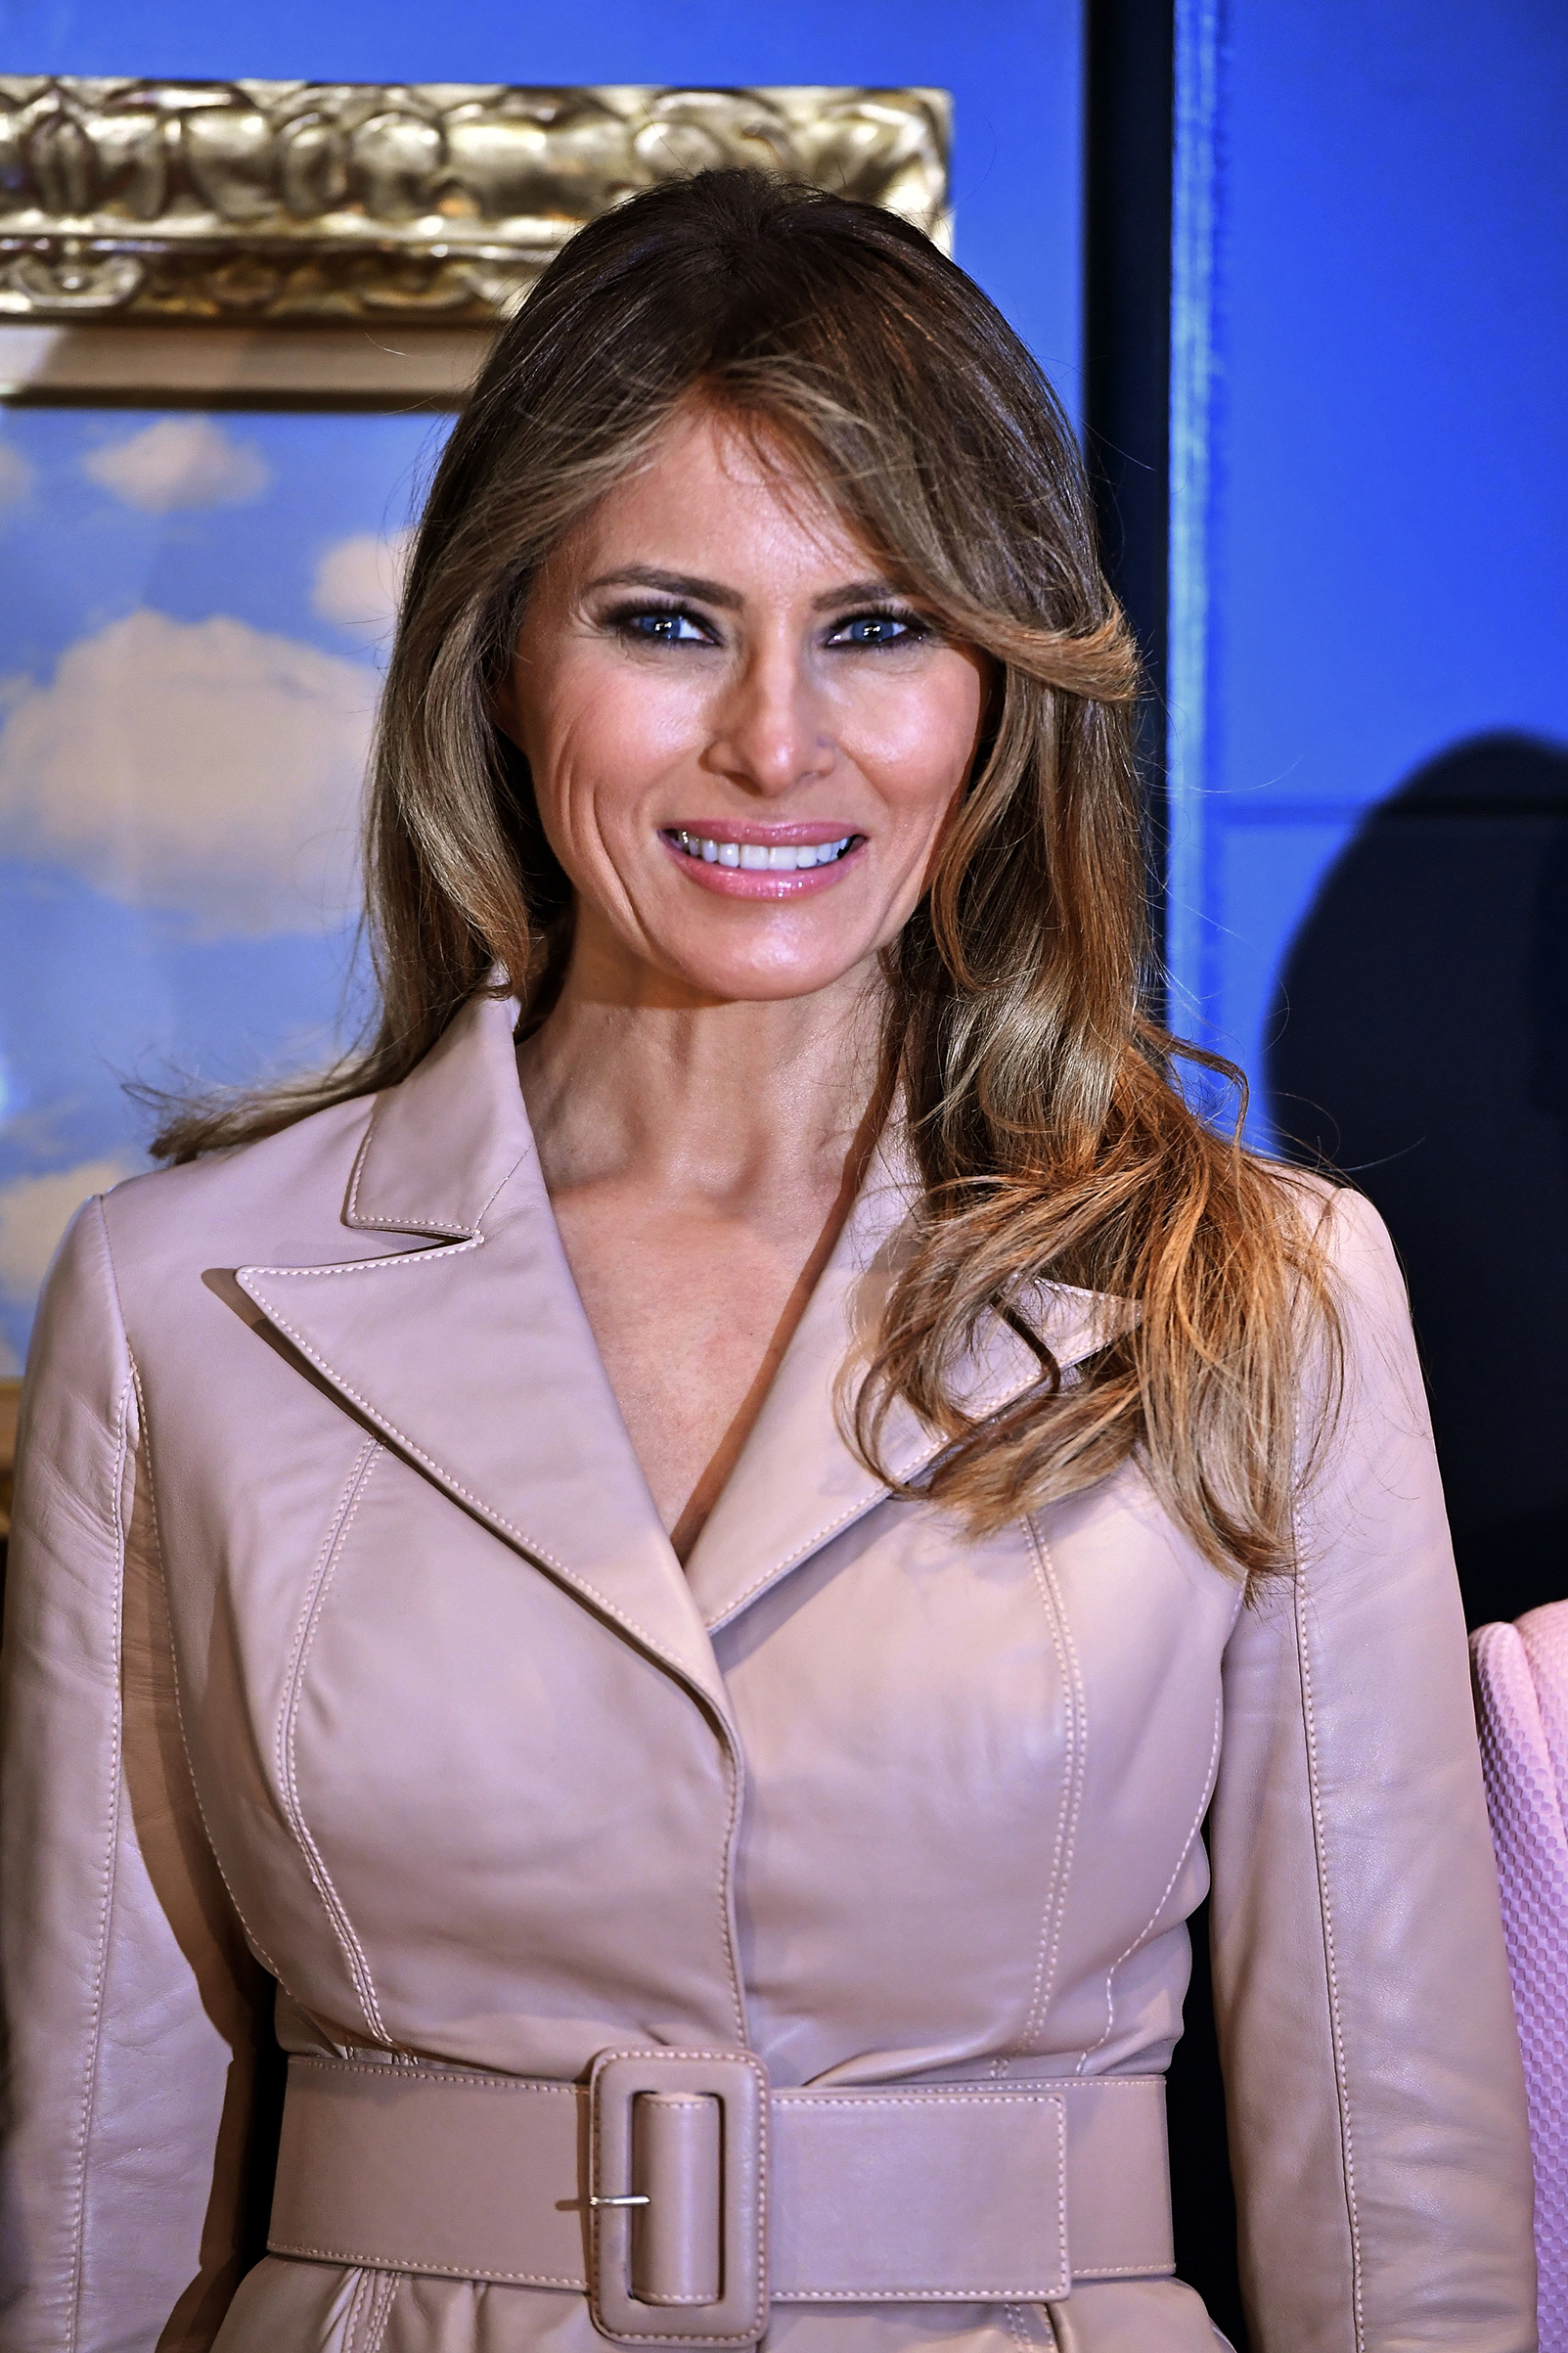 First lady Melania Trump wears a beige skirt suit by Belgian designer Maison Ullens , on a visit to the Magritte Museum, on May 25, 2017, in Brussels, on the sidelines of the NATO (North Atlantic Treaty Organization) summit.